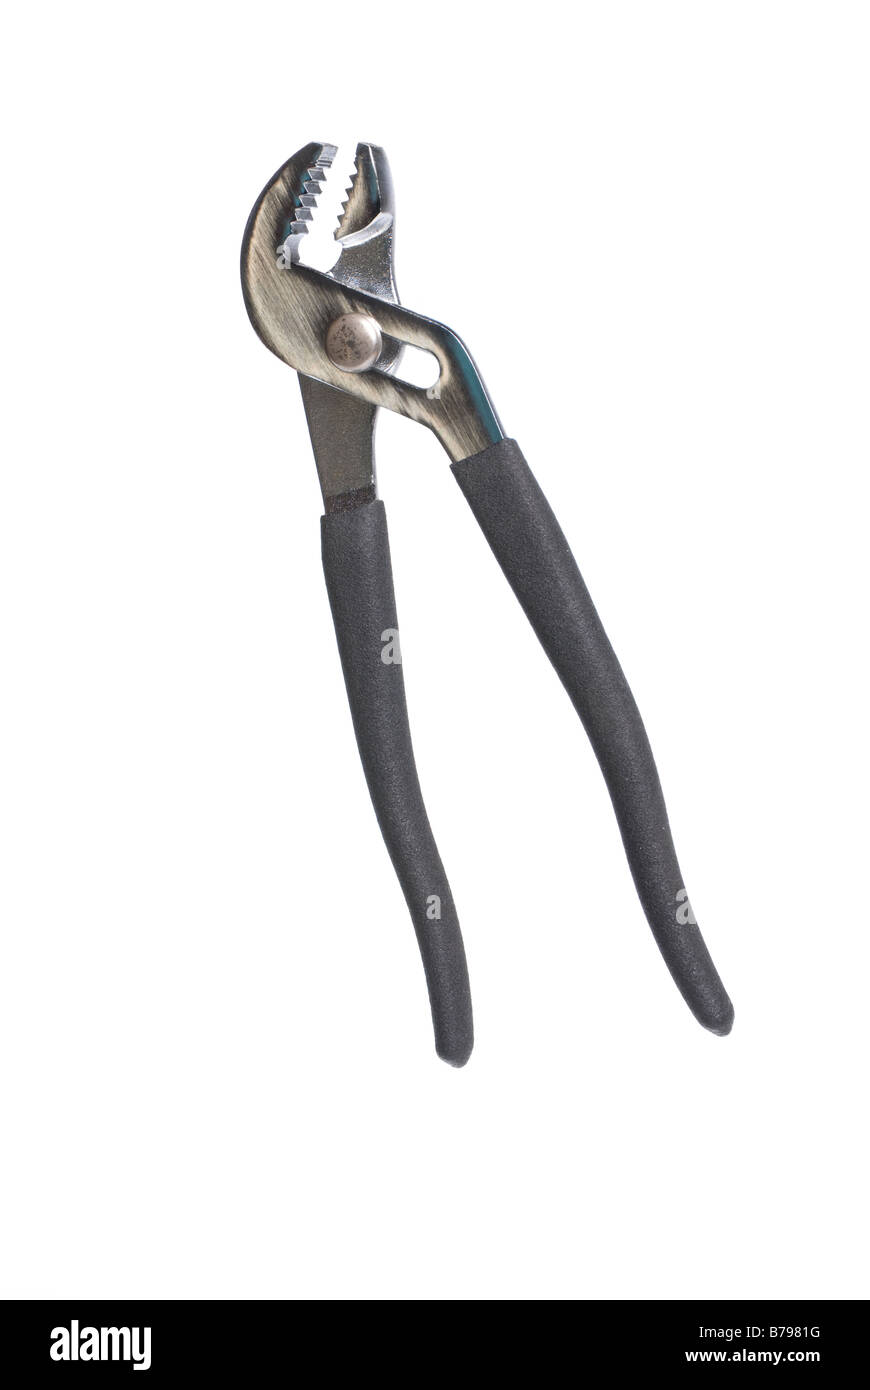 New pliers with sponge grips isolated against a white background can be used for any tooling or fabrication inference - Stock Image